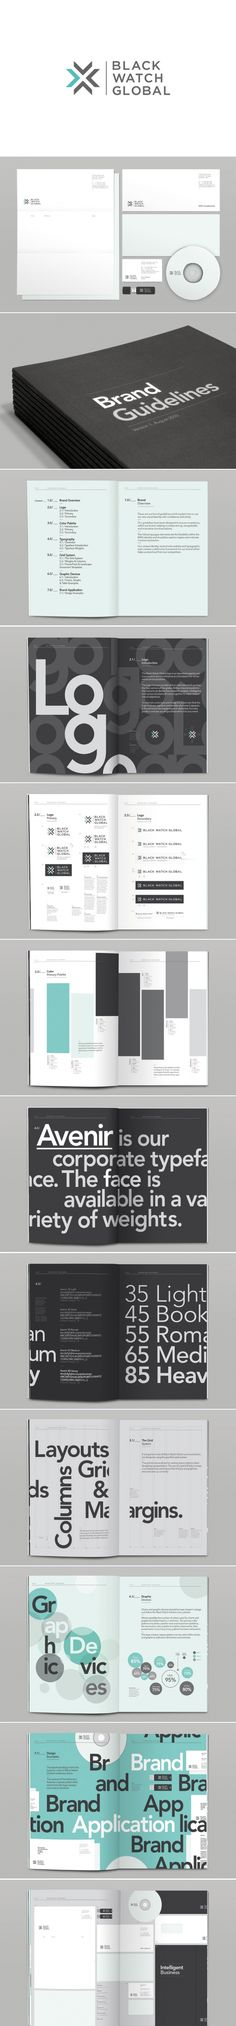 I like the way this is laid out and it gives me some ideas for my own materials.    Black Watch Global Identity and Style Guide by Mash Creative, UK  Different layout inspiration